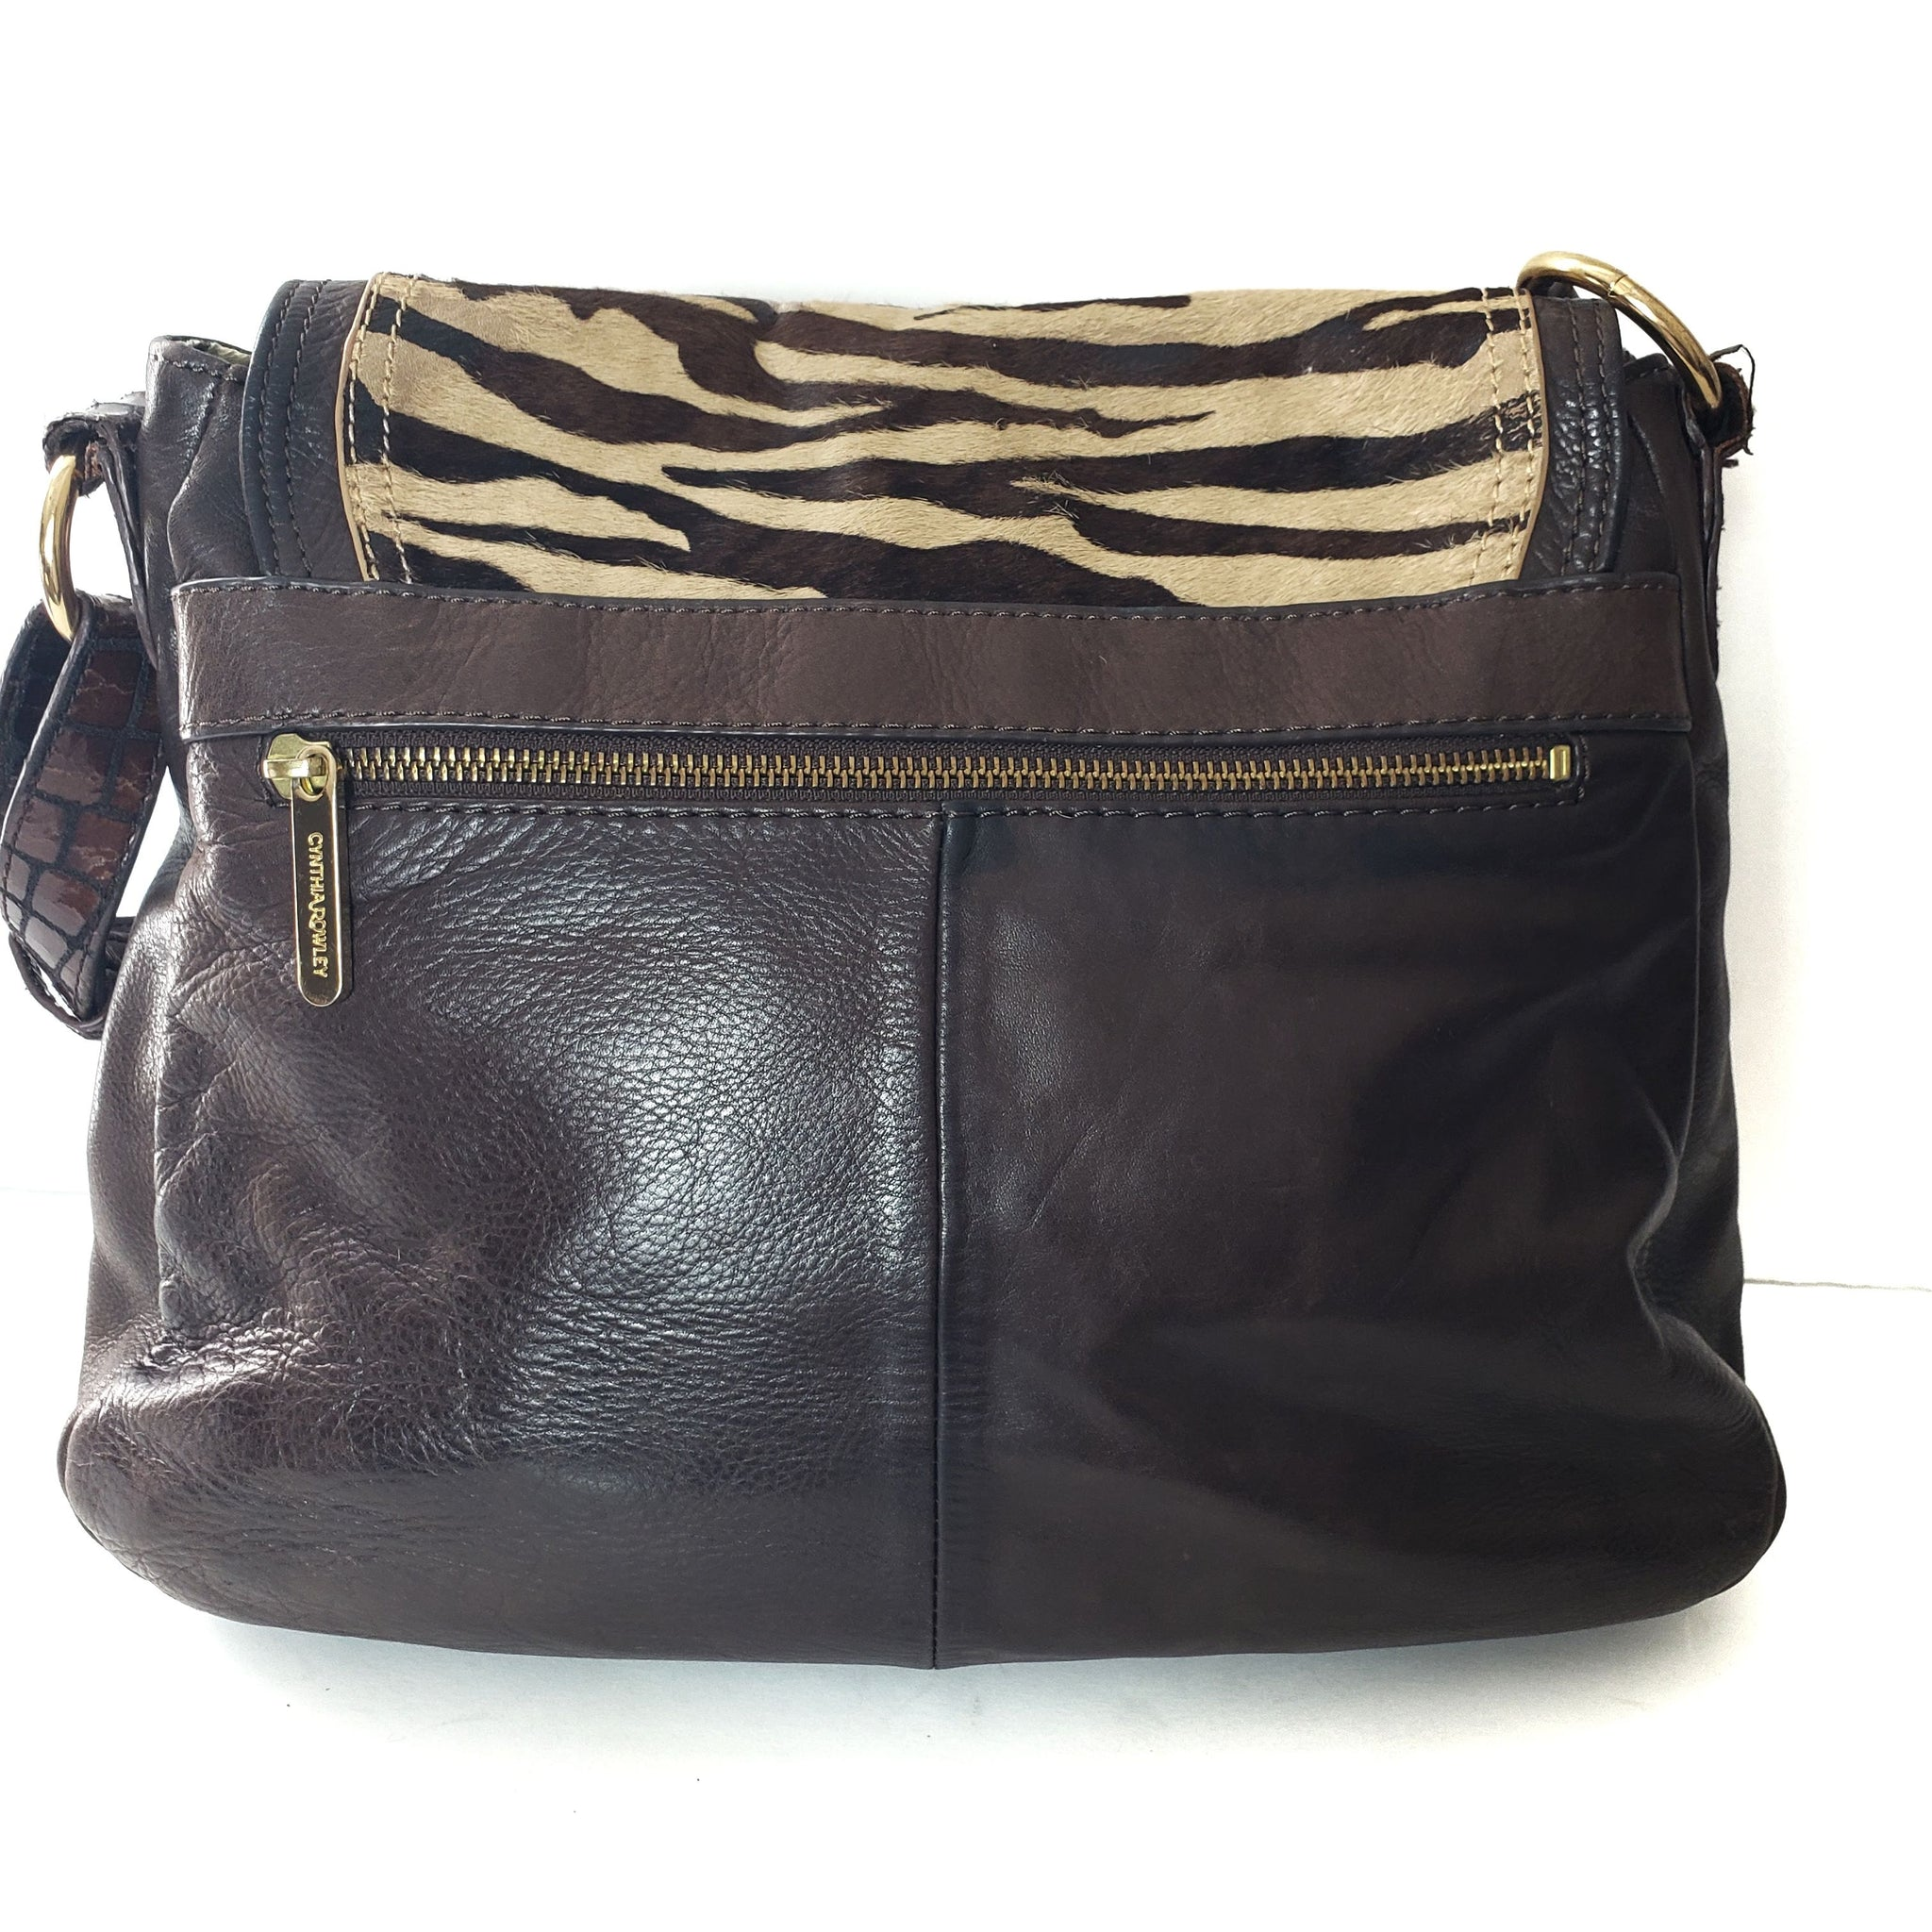 Cynthia Rowley Ponyhair Leather Shoulder Bag